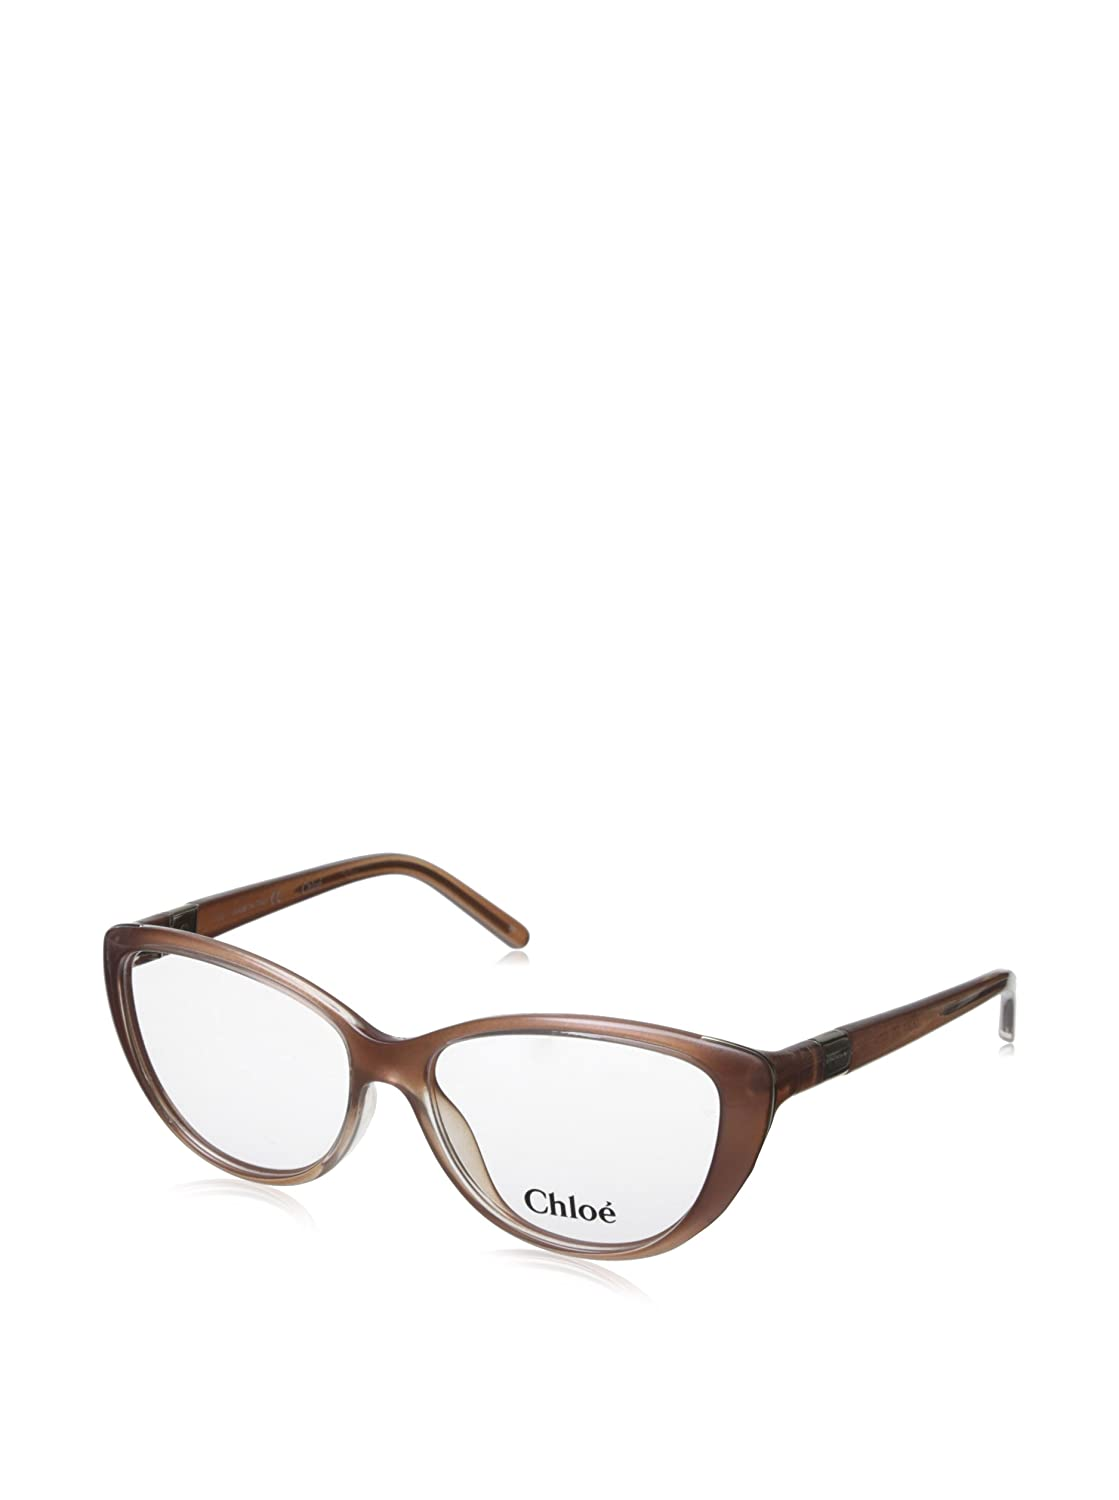 ed37245a0f8 Amazon.com  CHLOE Eyeglasses CE2601 275 Powder 53MM  Clothing